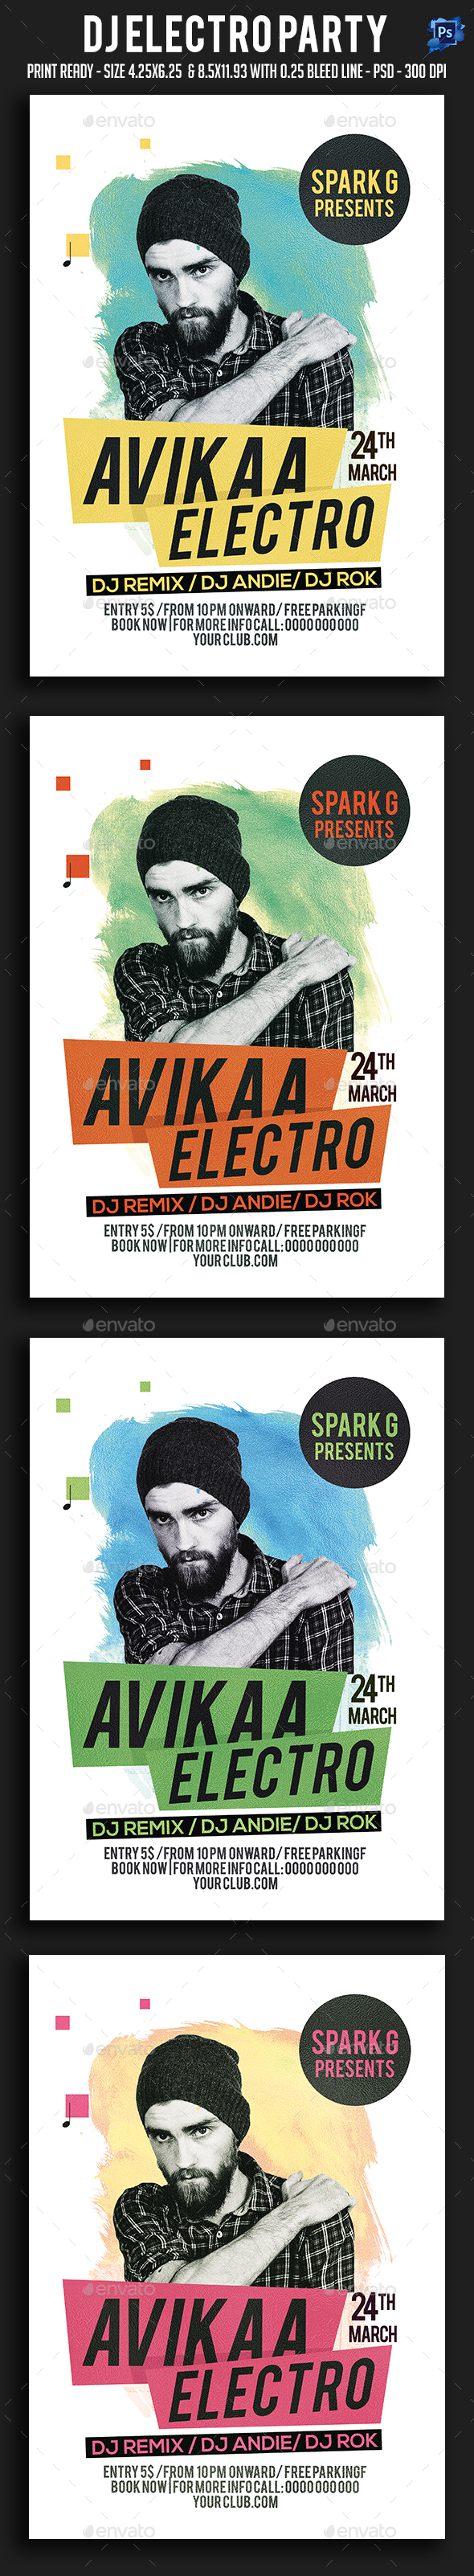 Dj Electro Party Flyer - Clubs & Parties Events